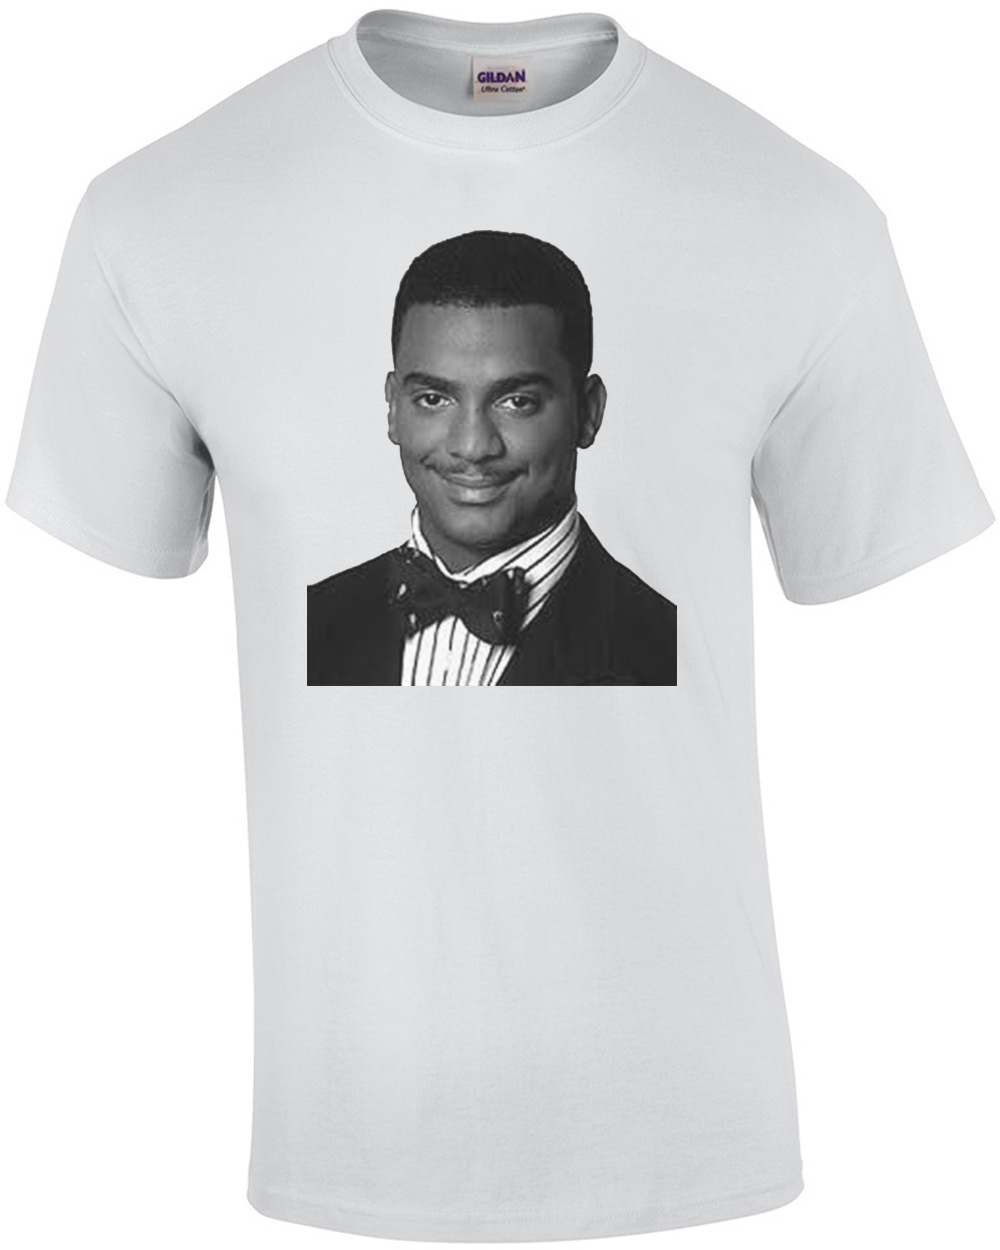 T-Shirt Fresh Prince Of Bel Air Carlton SWAG Will Smith New ANTR S-XL $ 19 elope. Flip Up Neon Hipster Costume Glasses for Men by elope $ 8 95 Prime ( days) out of 5 stars Home of Retro. The Fresh Prince of Bel Air Theme Tune Lyrics Mens White T-Shirt $ 8